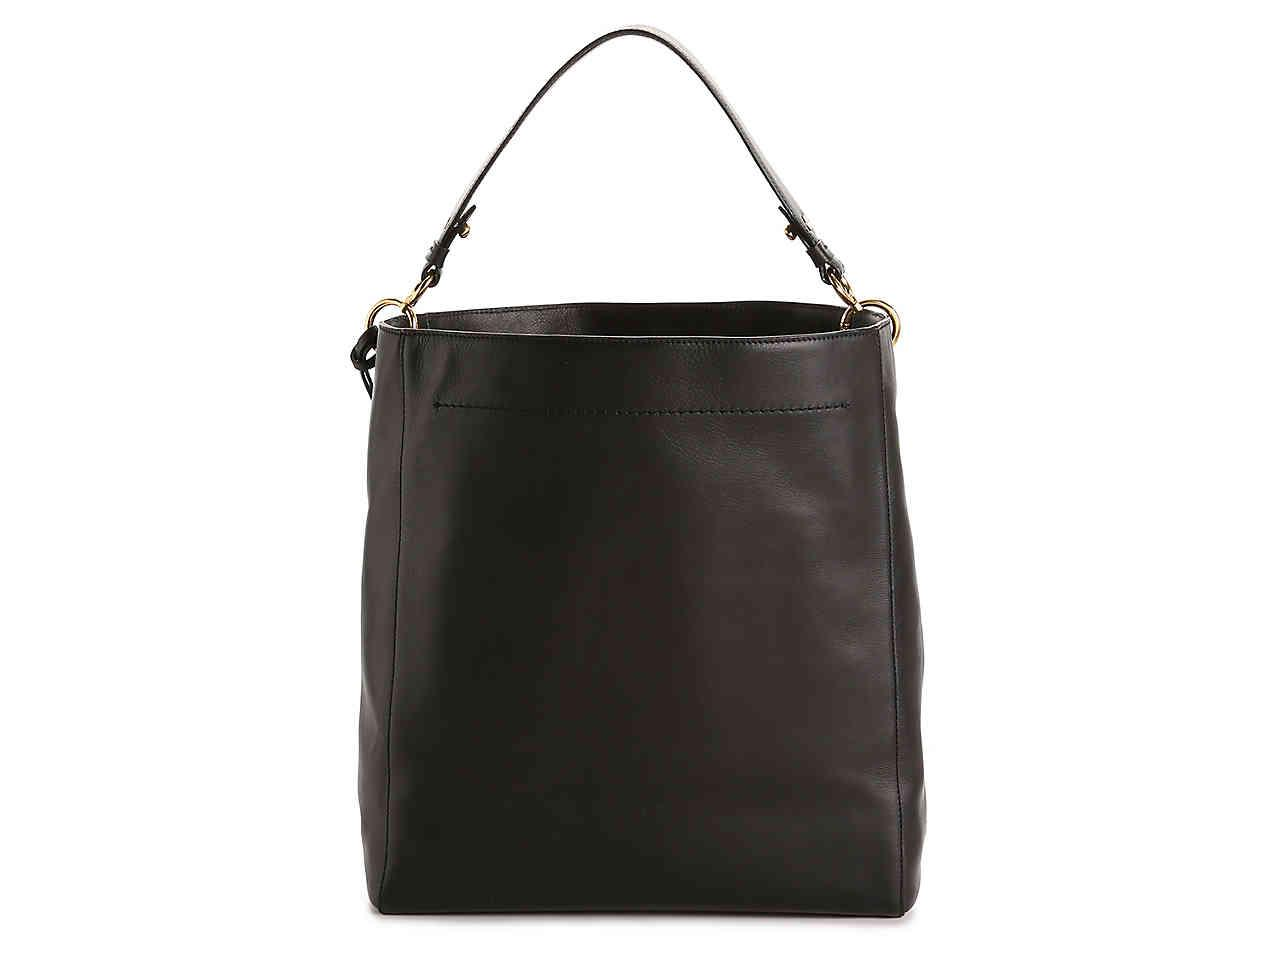 Cole Haan - Black Zoe Leather Tote - Lyst. View fullscreen f708a20421